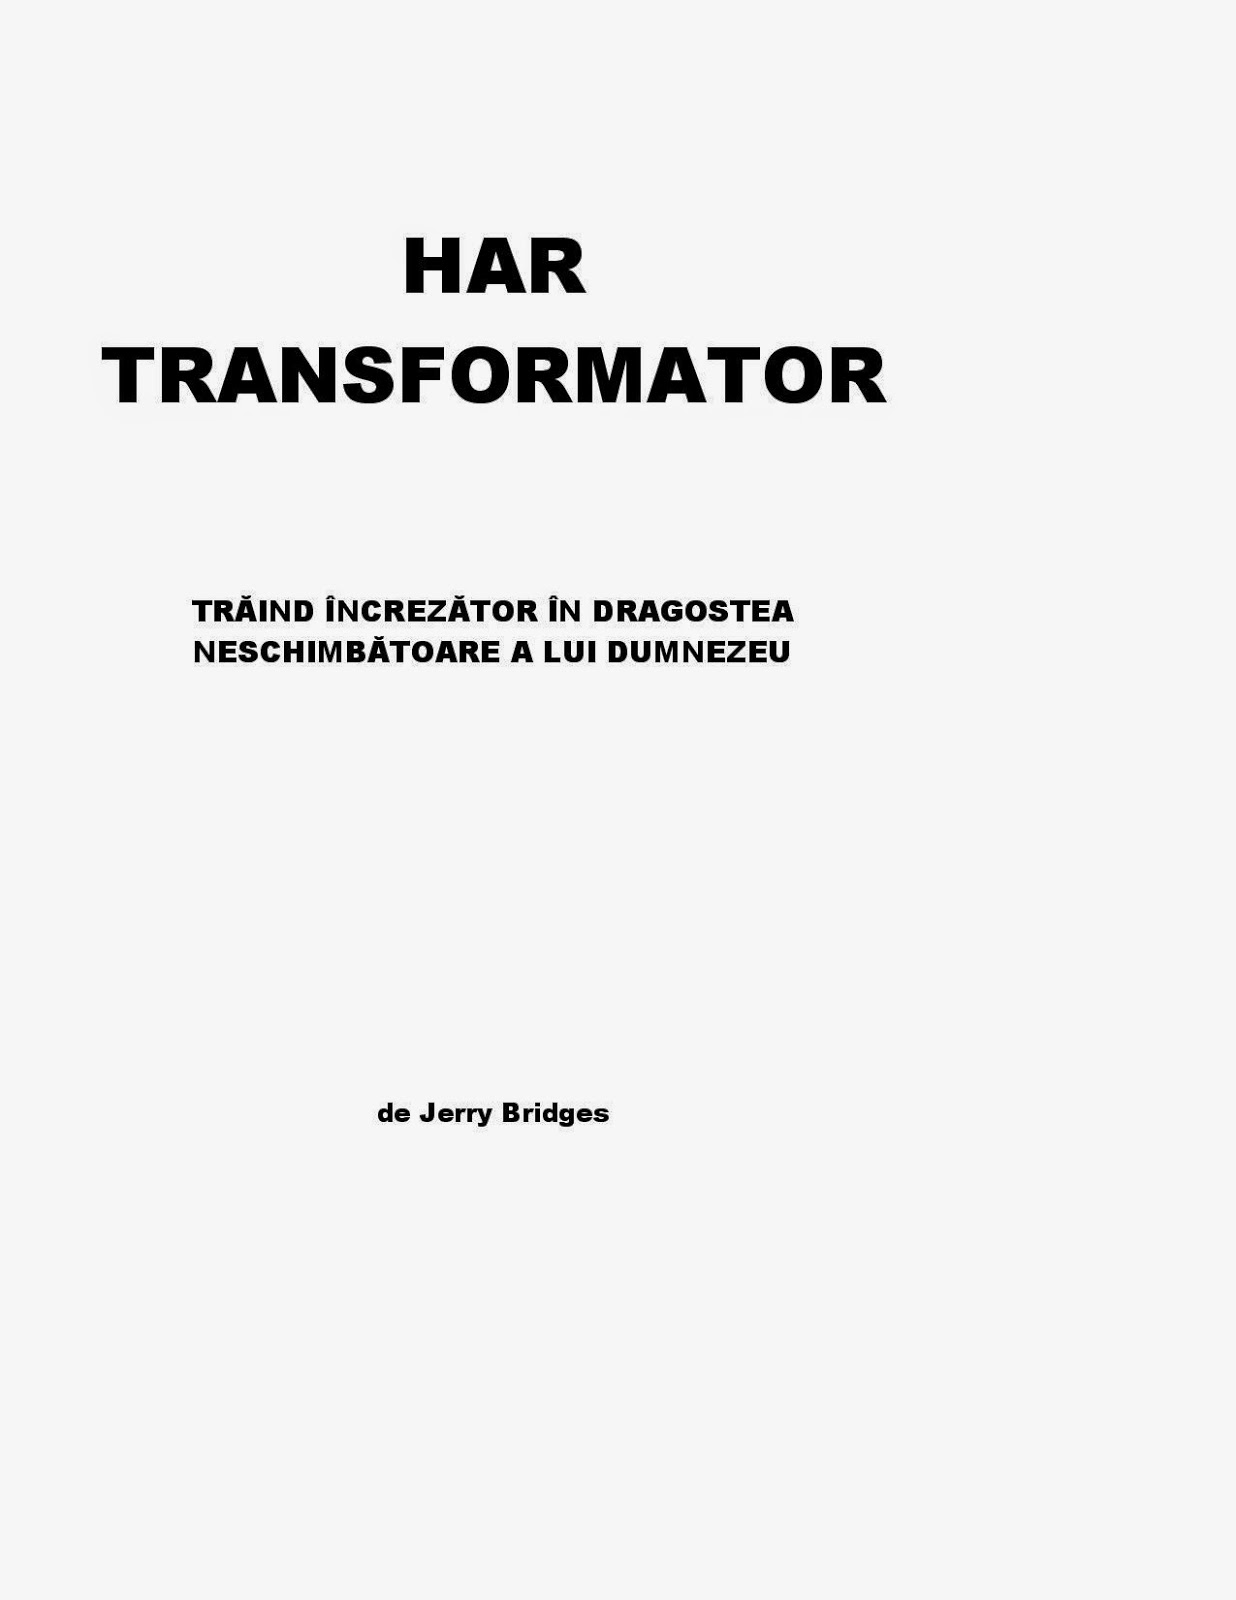 Jerry Bridges-Har Transformator-